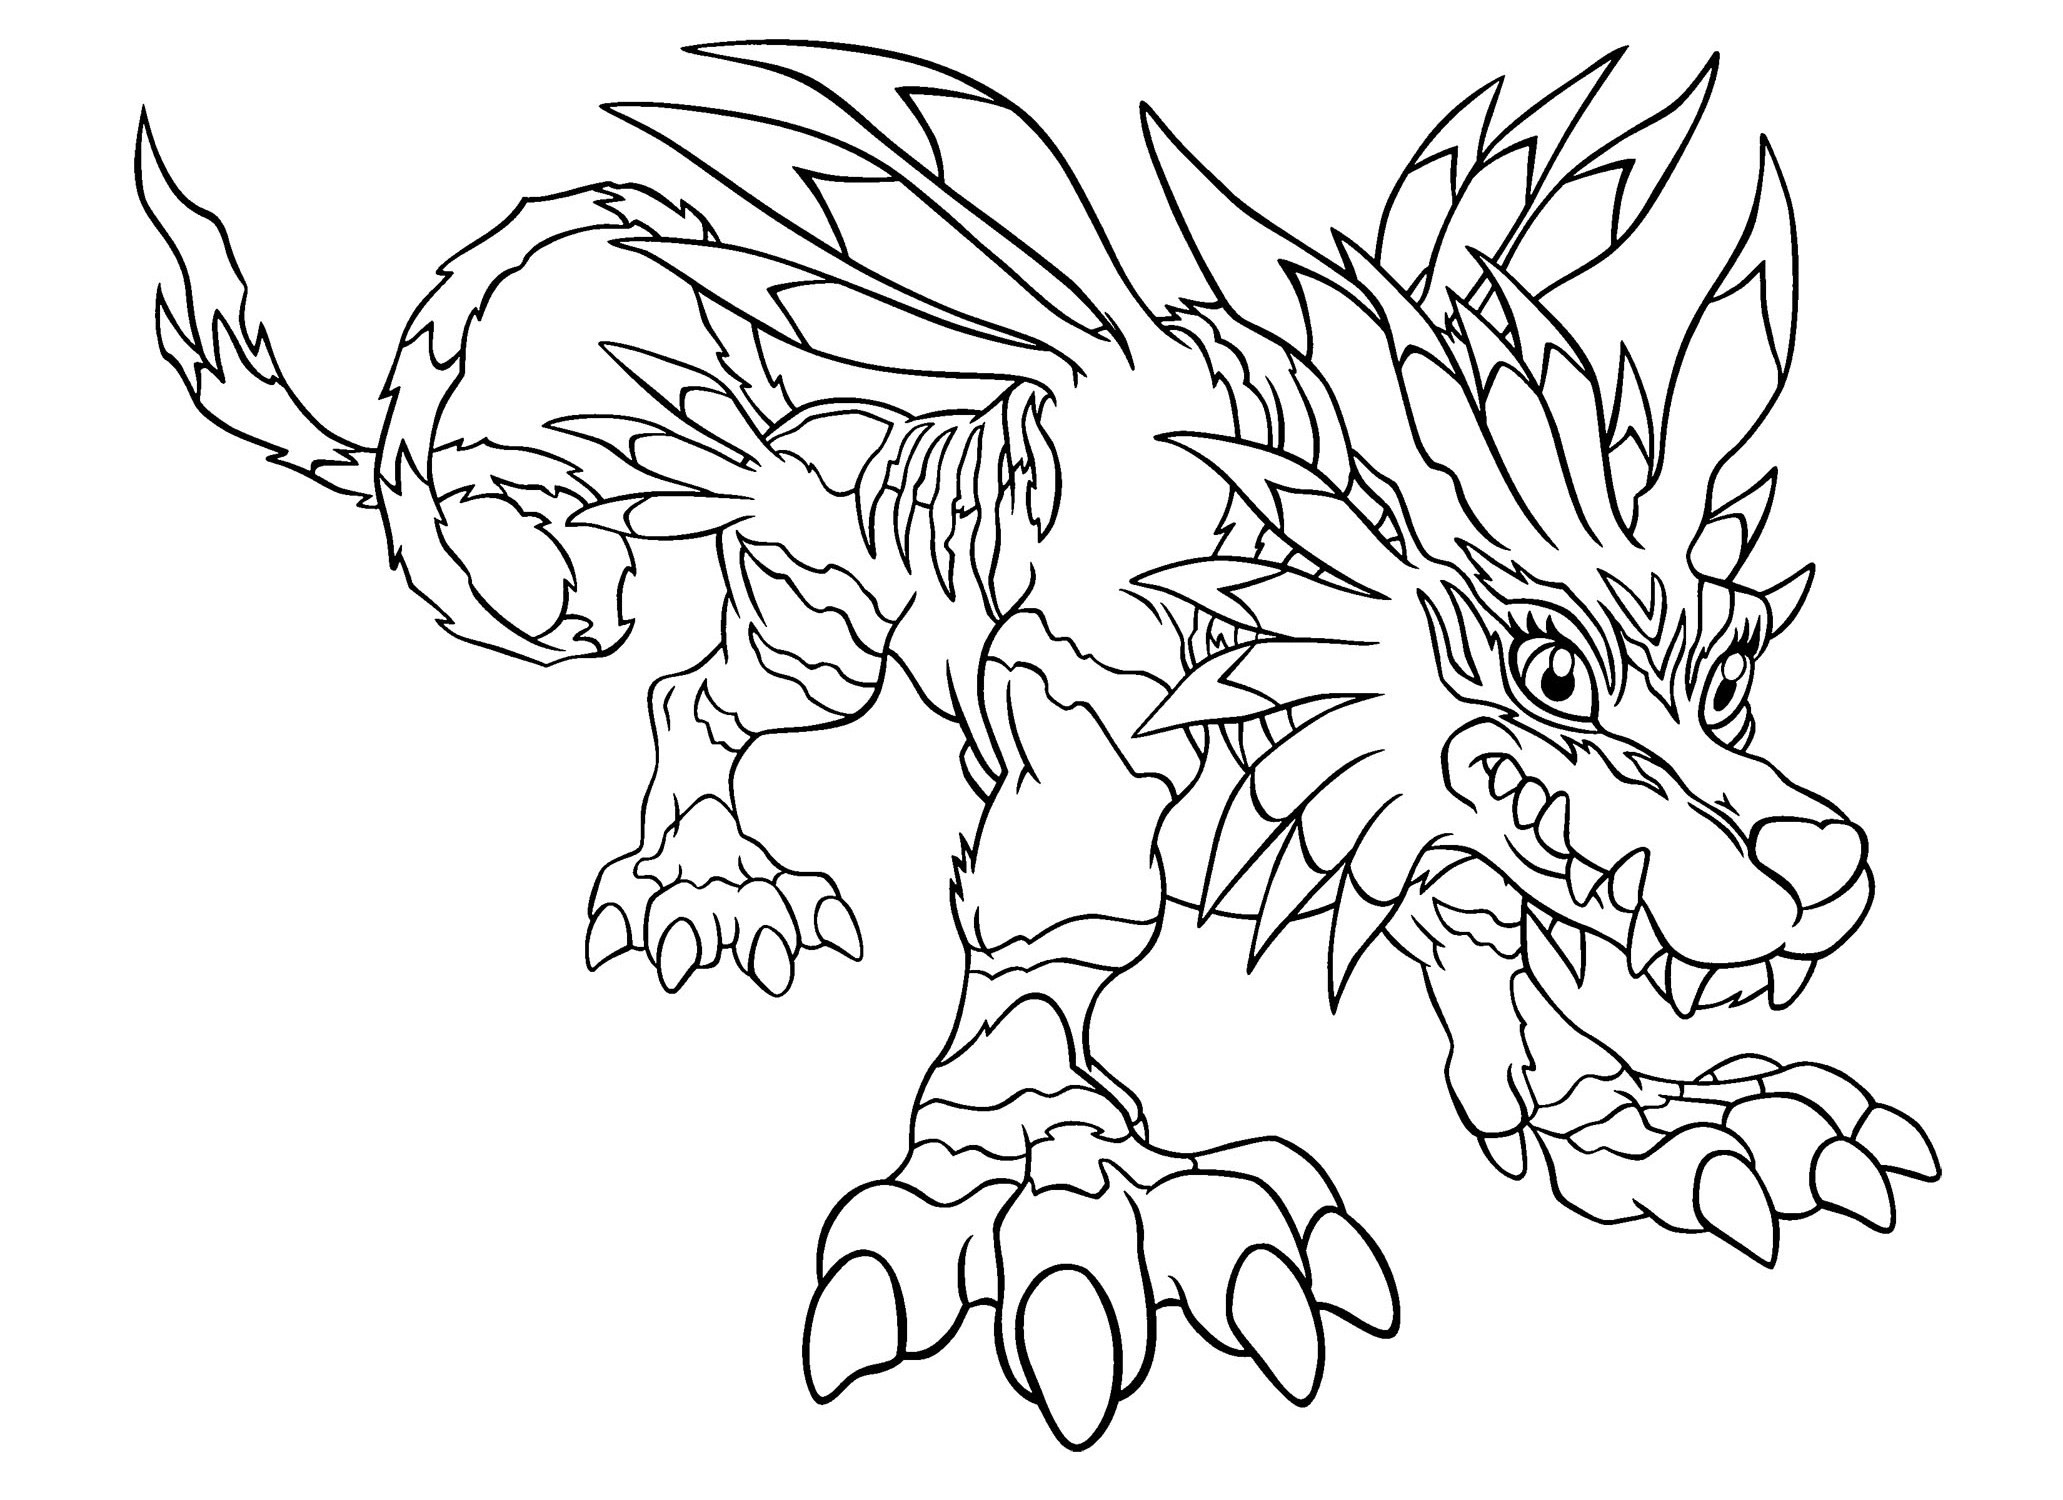 Digimon Coloring Pages  Digimon Color Page Coloring Pages For Kids Cartoon